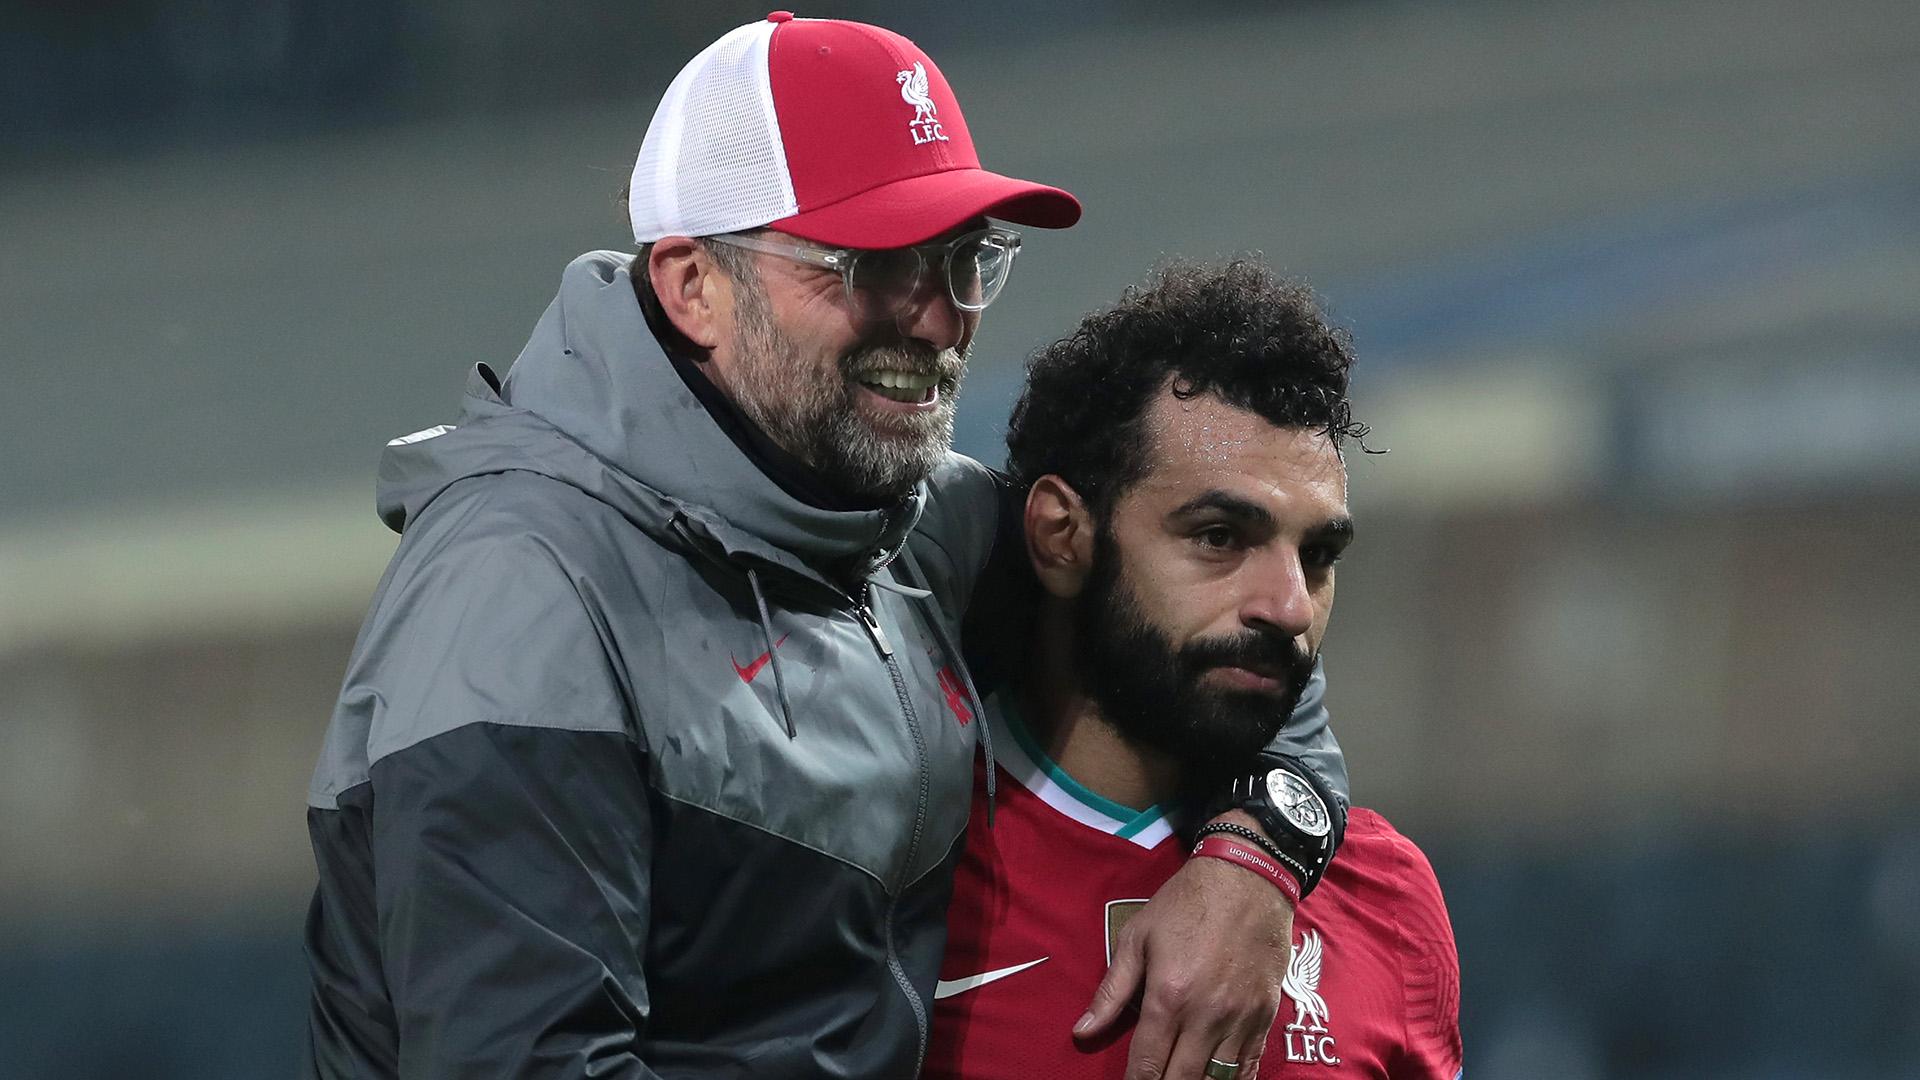 Egypt vow they won't call up Salah for Olympics unless Liverpool give green light